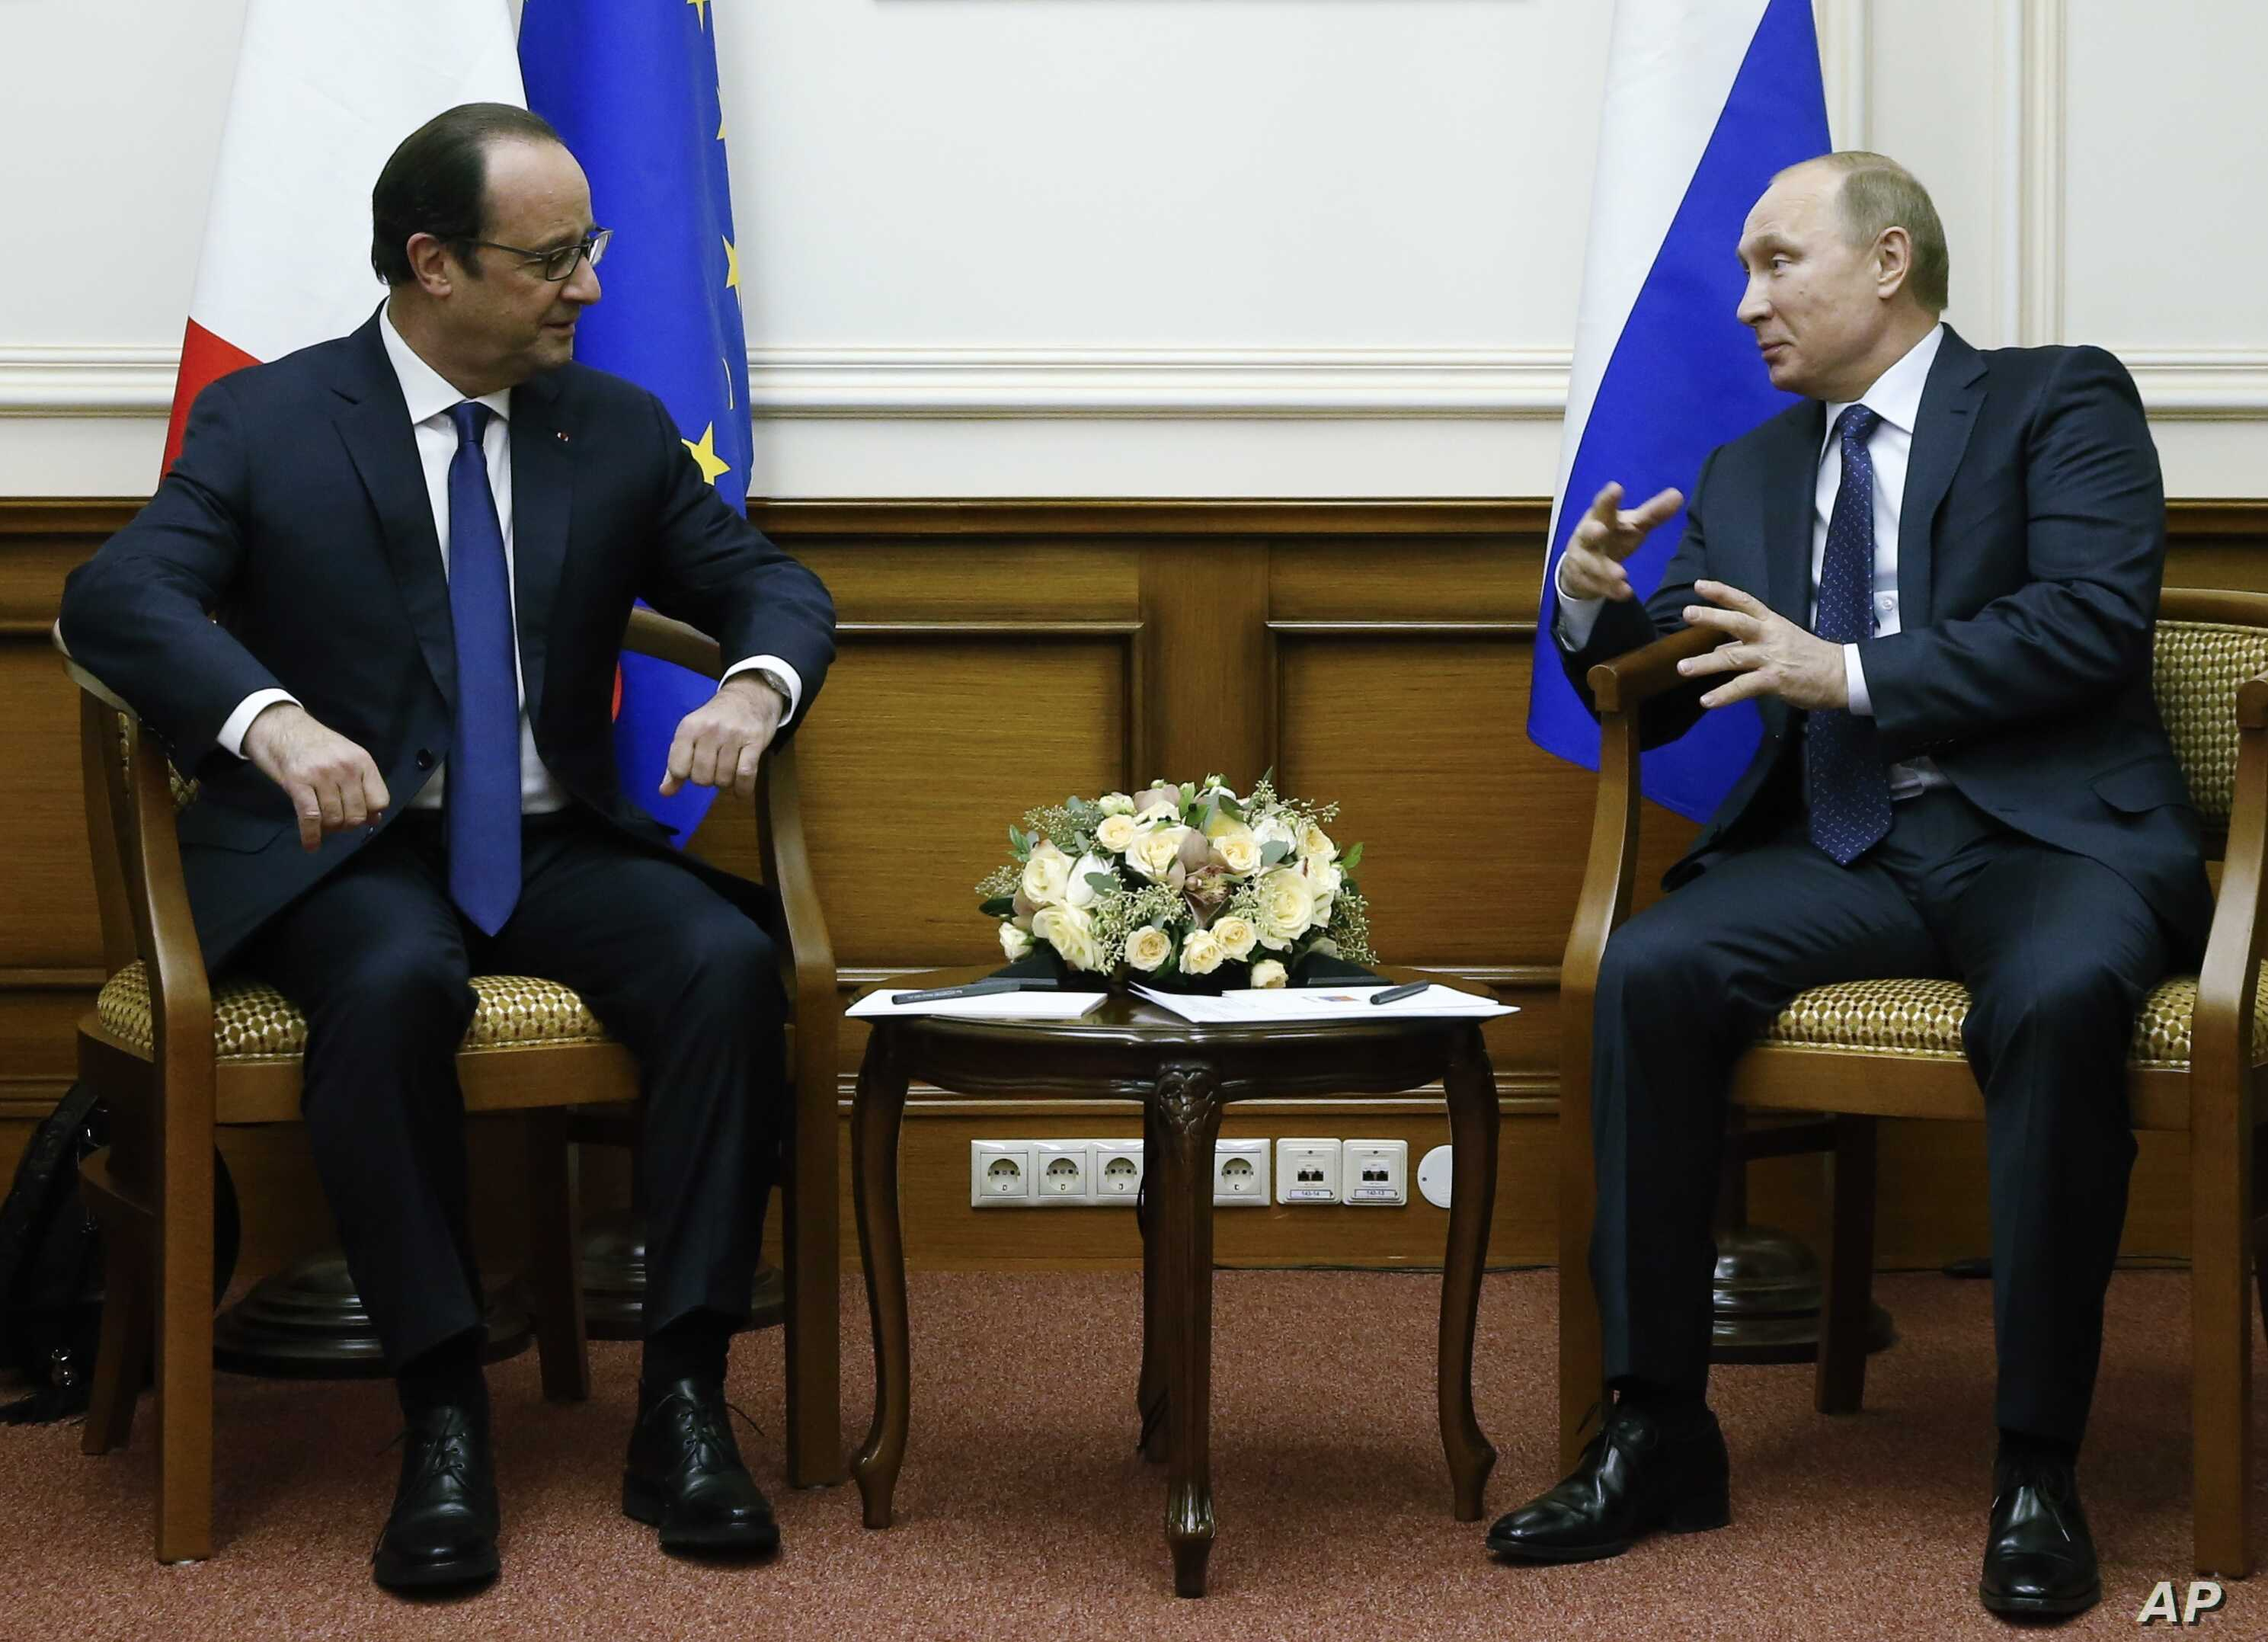 Russian President Vladimir Putin, right, and French President Francois Hollande speak during their meeting at Moscow's Vnukovo airport, Saturday, Dec. 6, 2014.